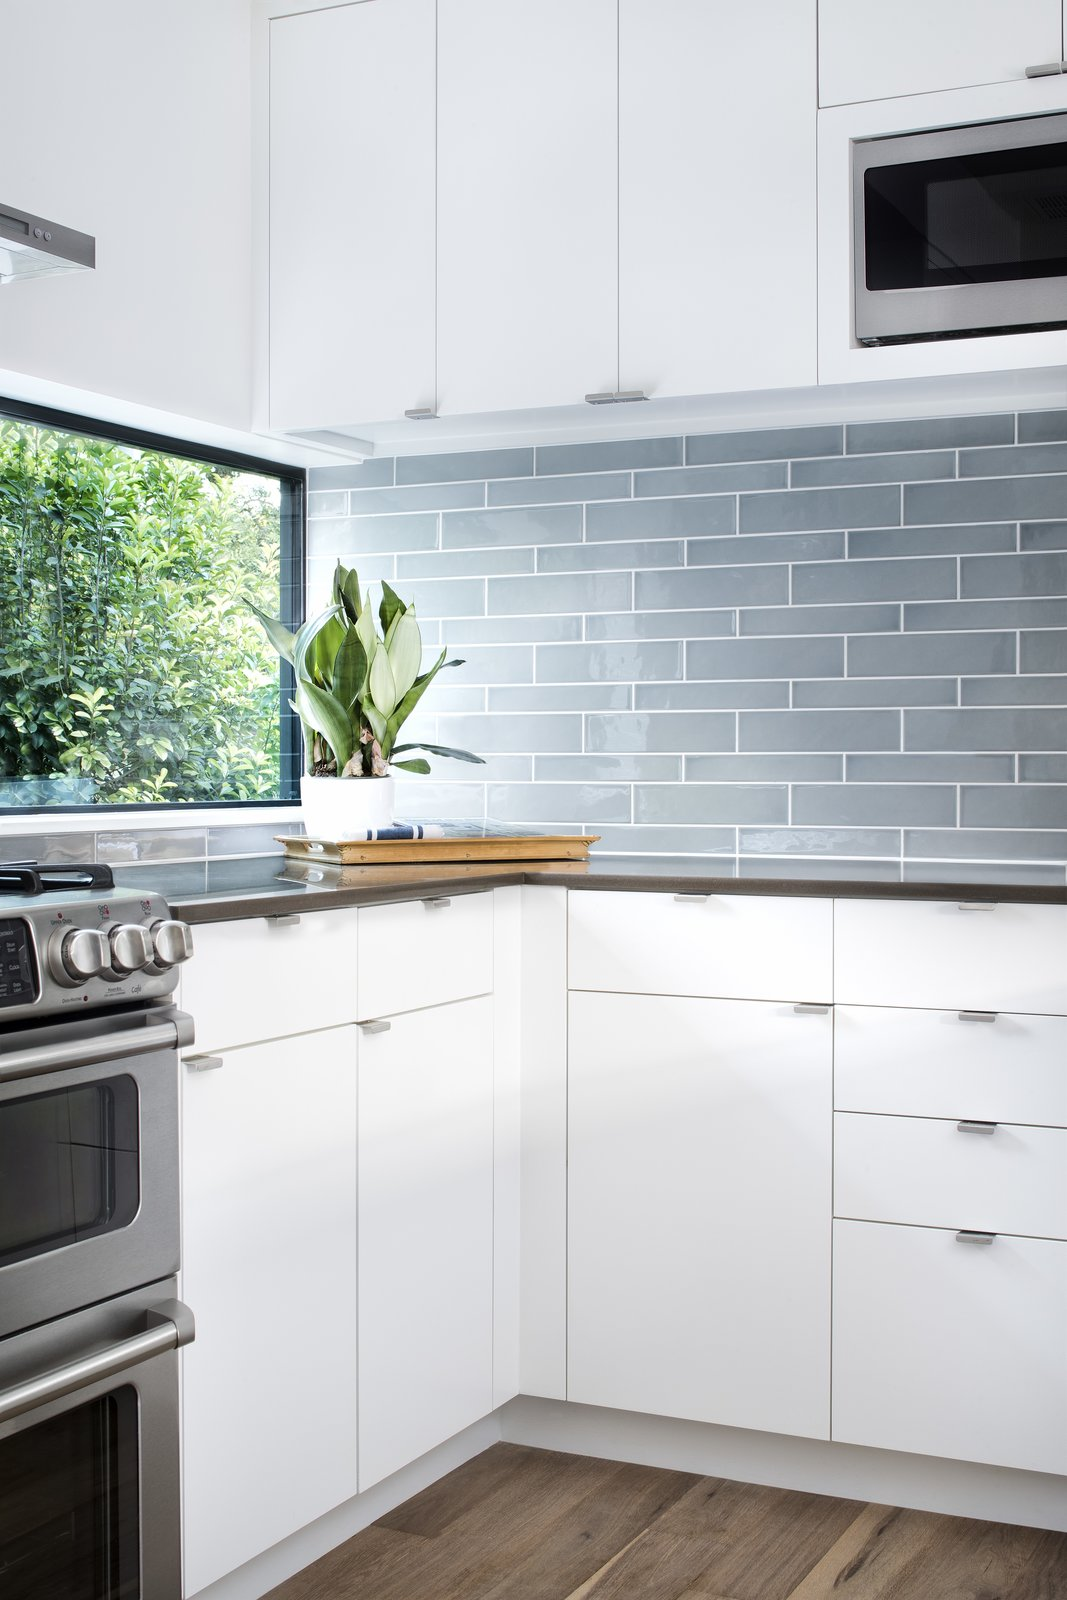 A large horizontal windows in the kitchen washes natural light across the blue accent tiles.  www.clarkrichardson.com